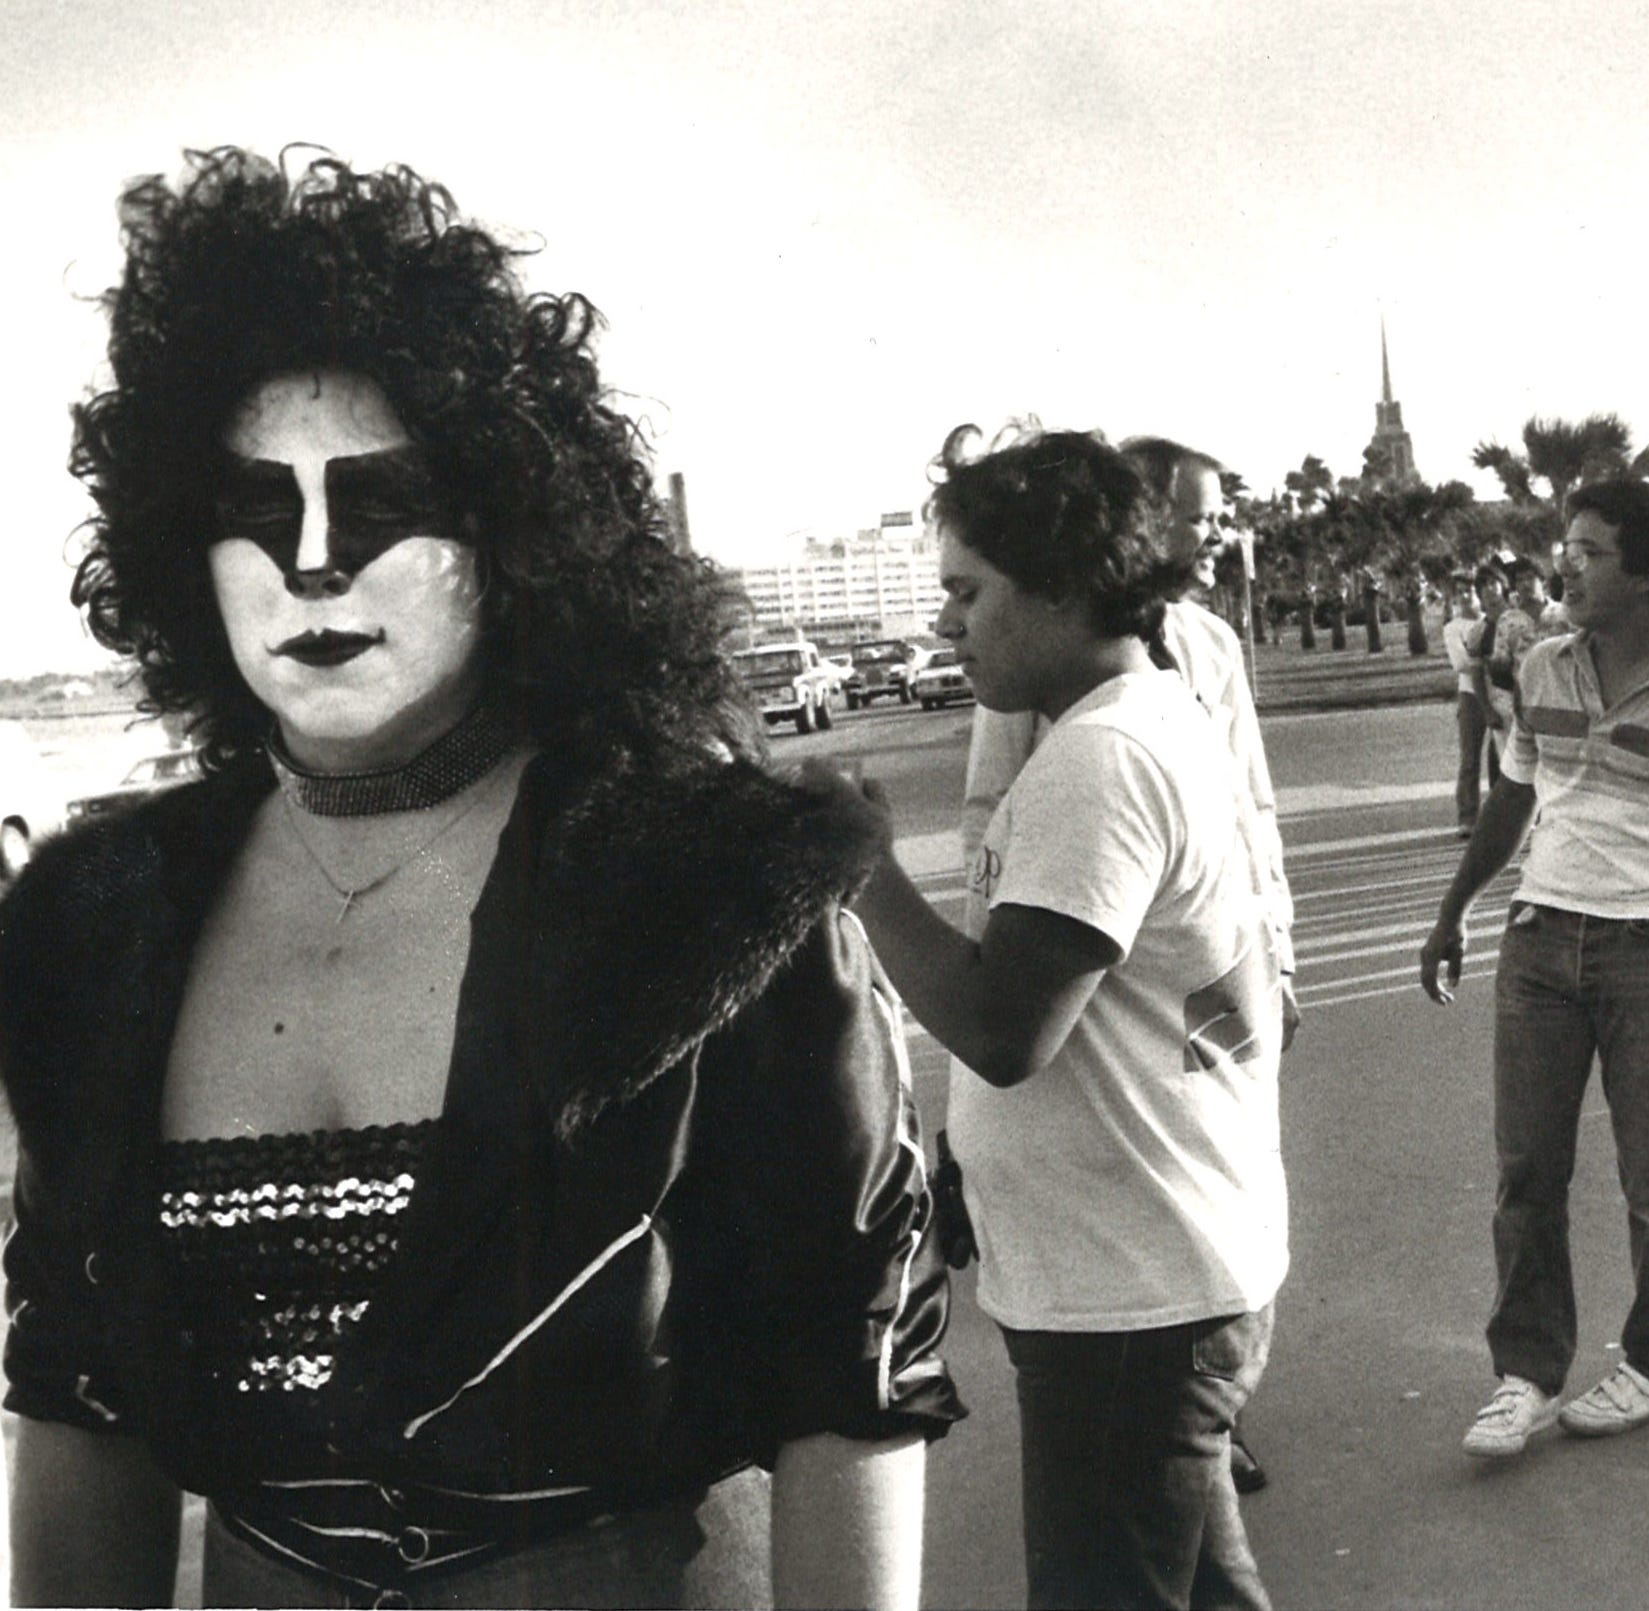 #TBT: KISS concerts at Corpus Christi's Memorial Coliseum brought crowds — and protesters